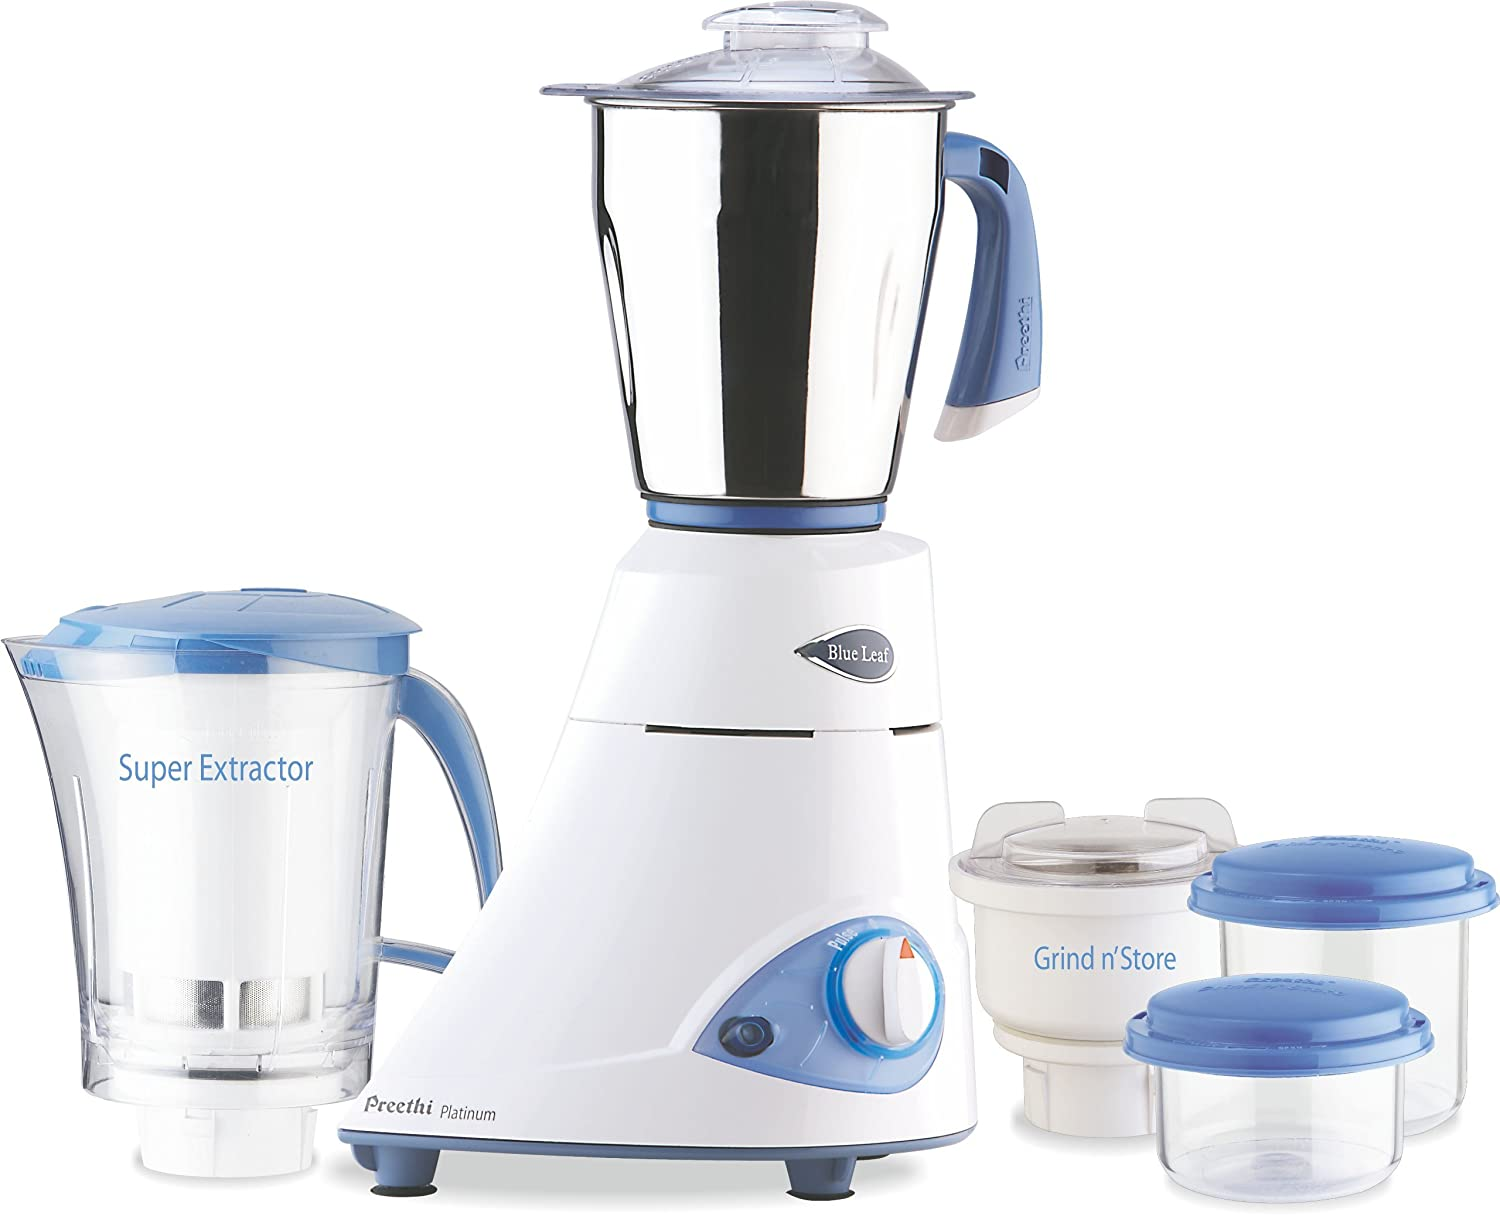 Preethi Blue Leaf Platinum Mixer Grinder with Juice Extractor MG153